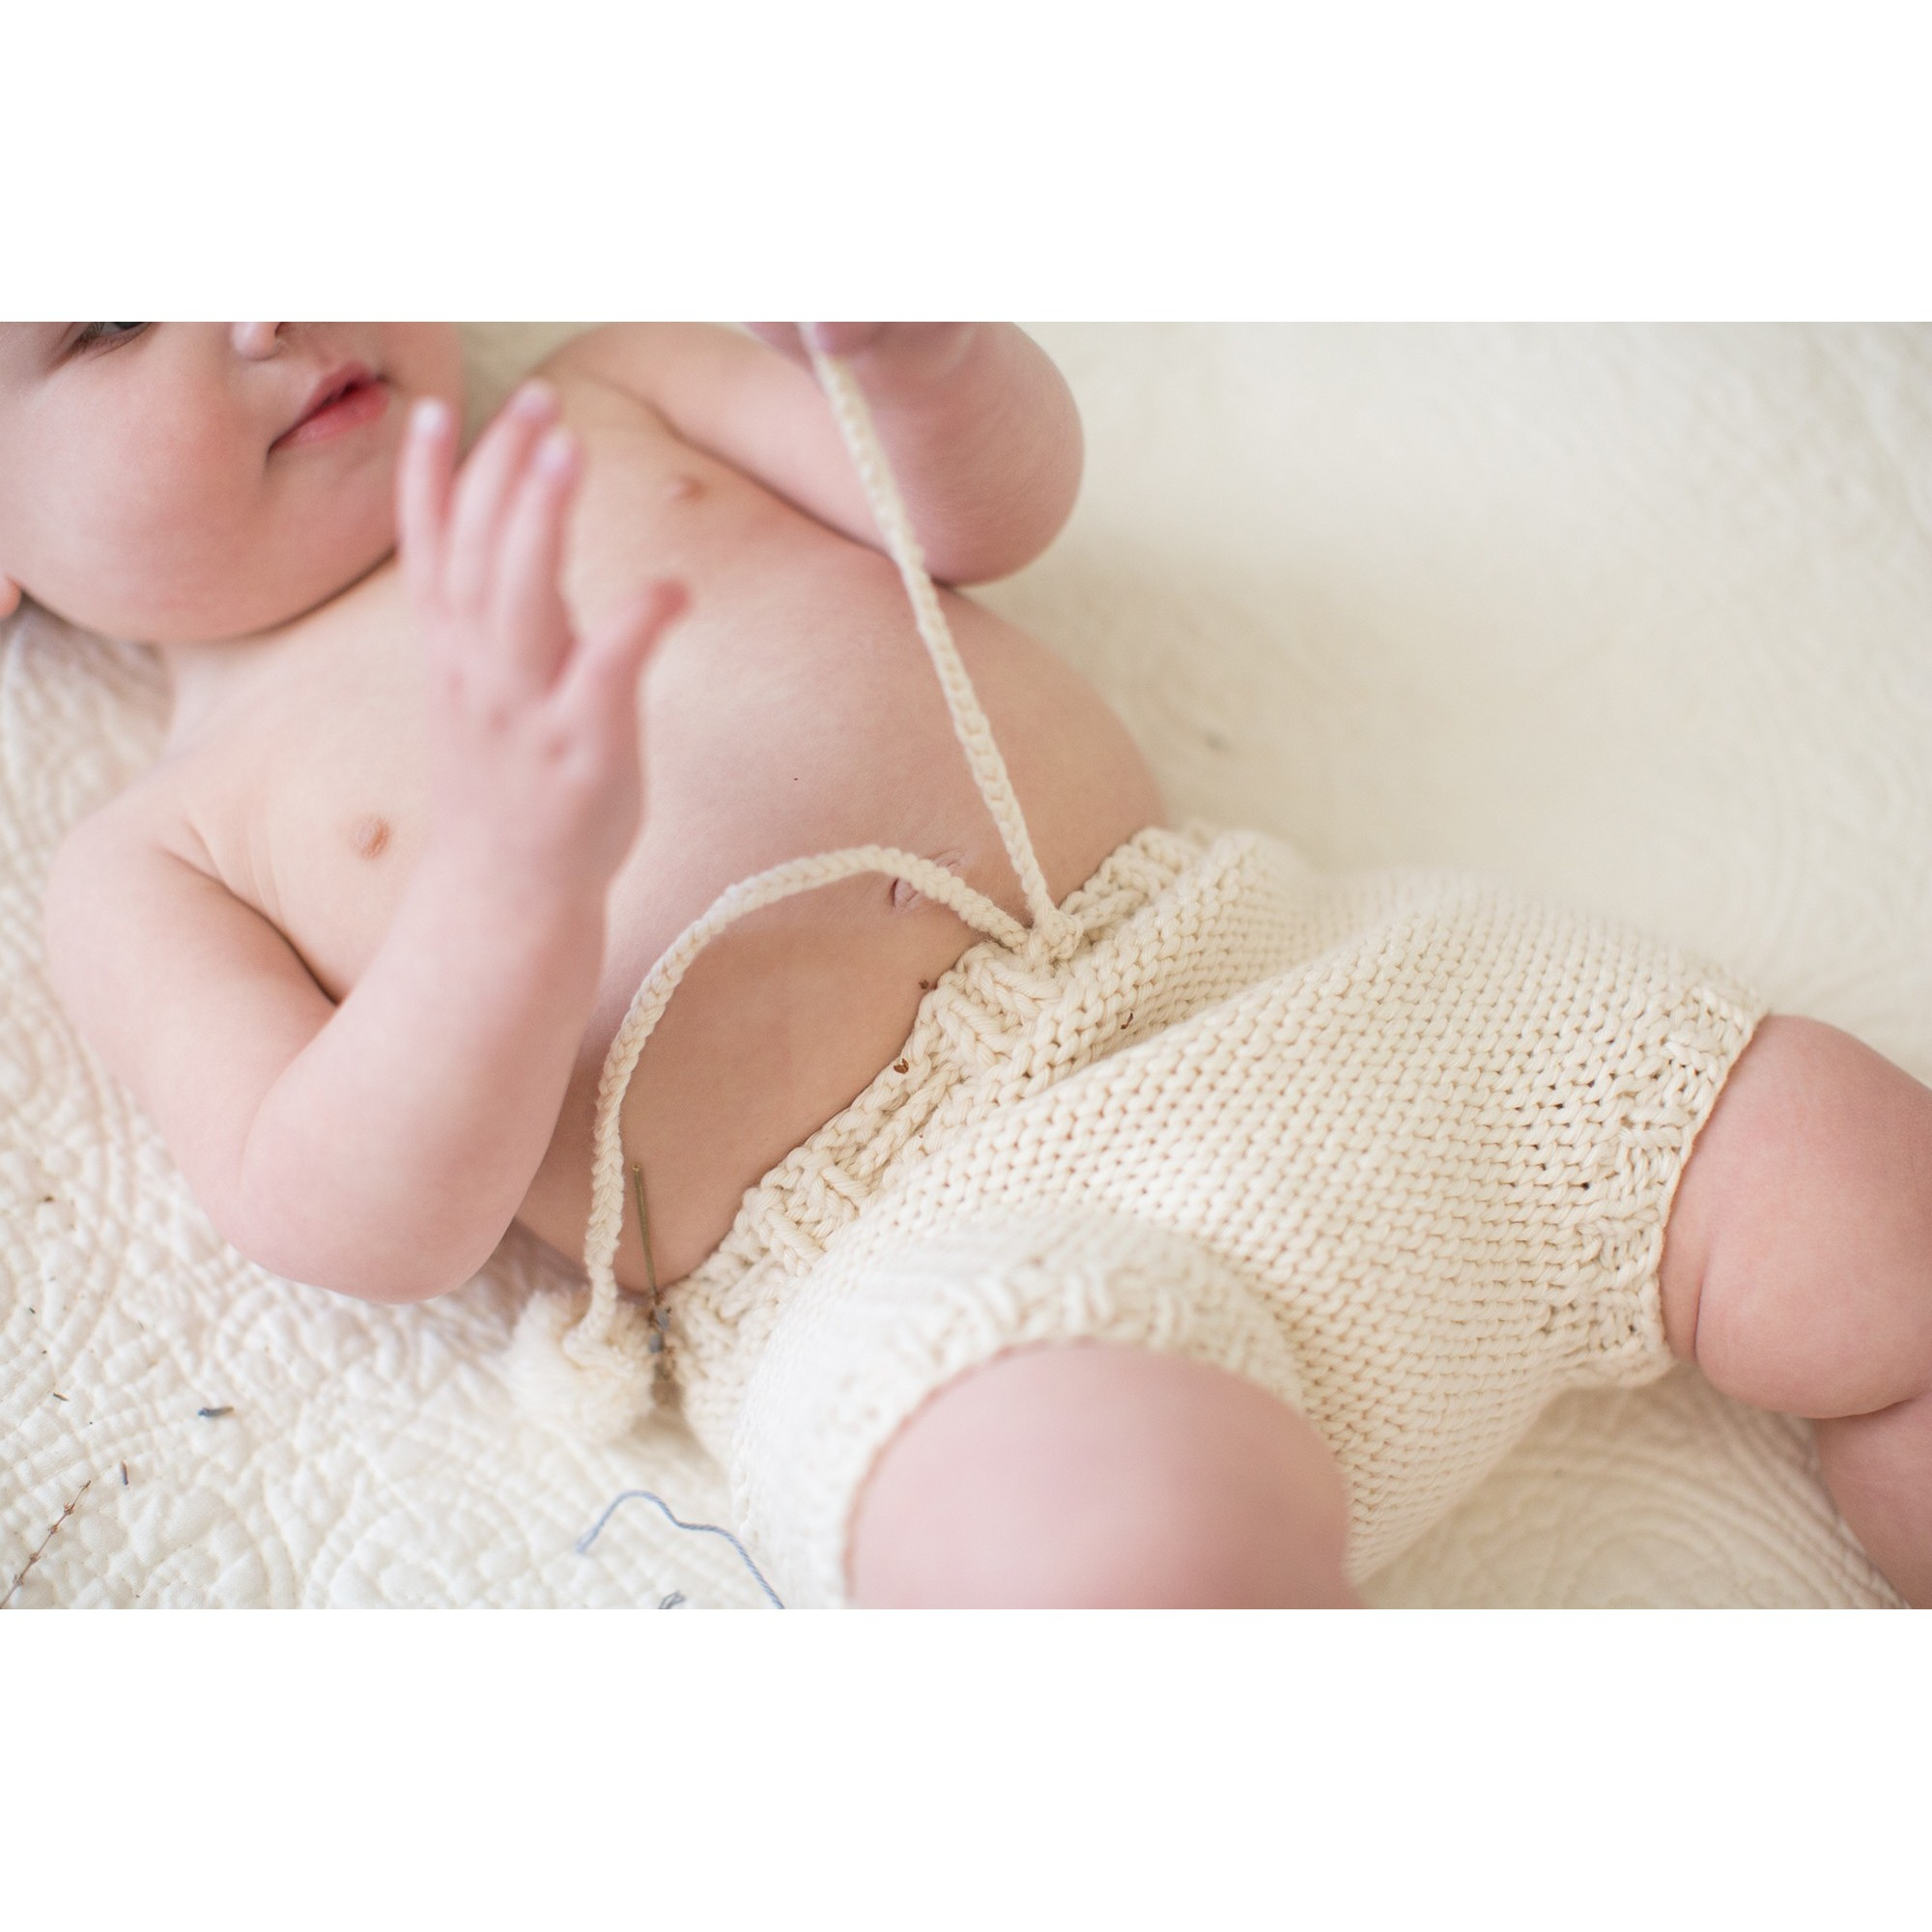 Germain bloomer for baby - made from natural white coton - worn